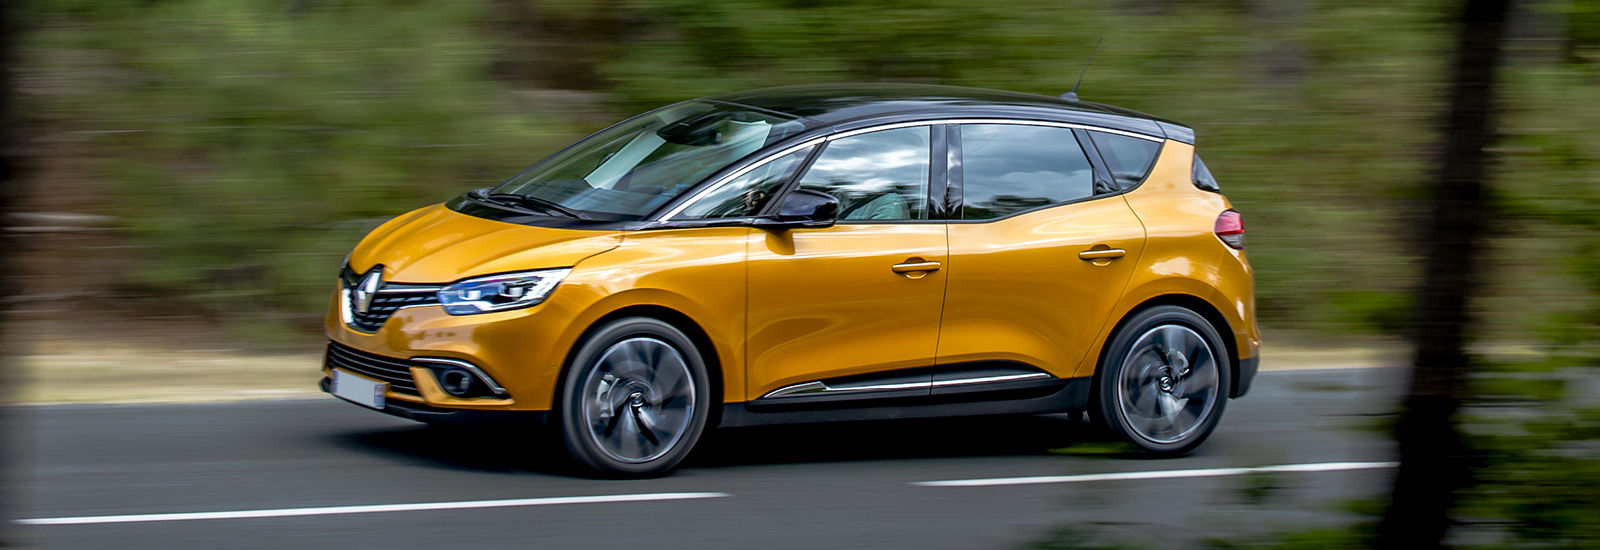 Renault Scenic size and dimensions guide | carwow